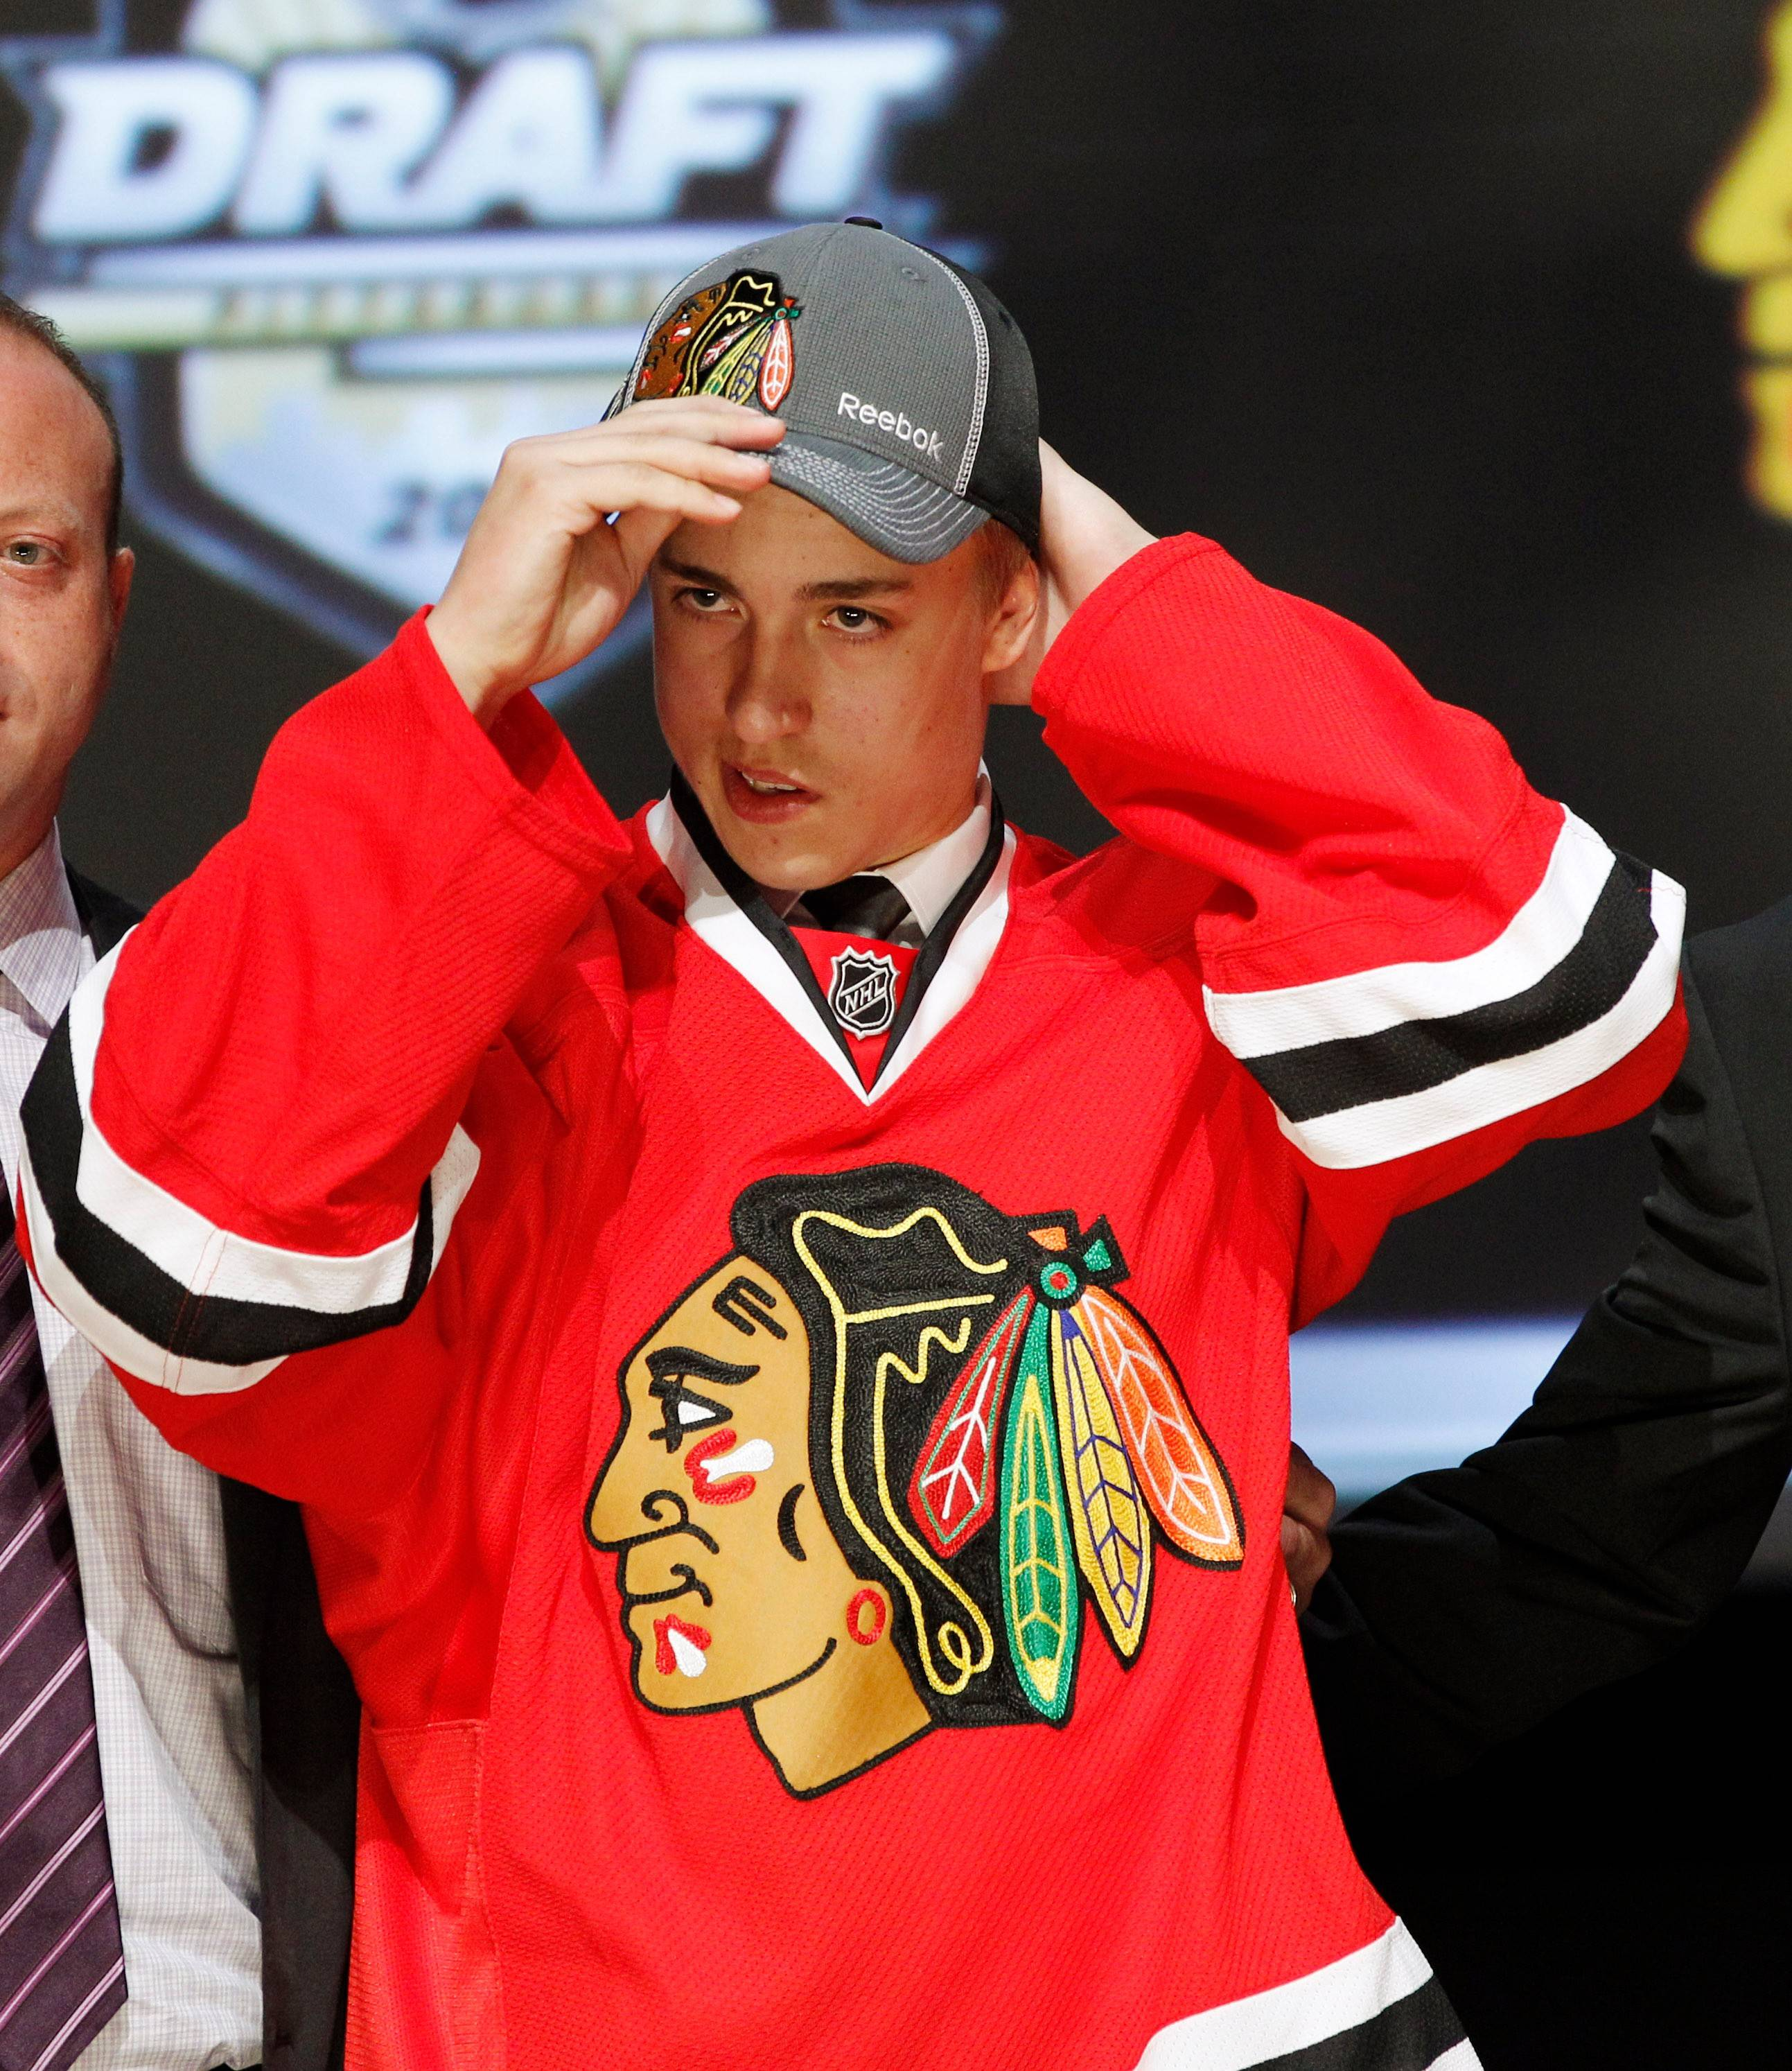 Teuvo Teravainen, a winger from Finland, pulls on a Blackhawks cap after being chosen 18th overall in the 2012 NHL draft. Teravainen, 19, will see his first action with the Hawks soon because of Patrick Kane's knee injury.